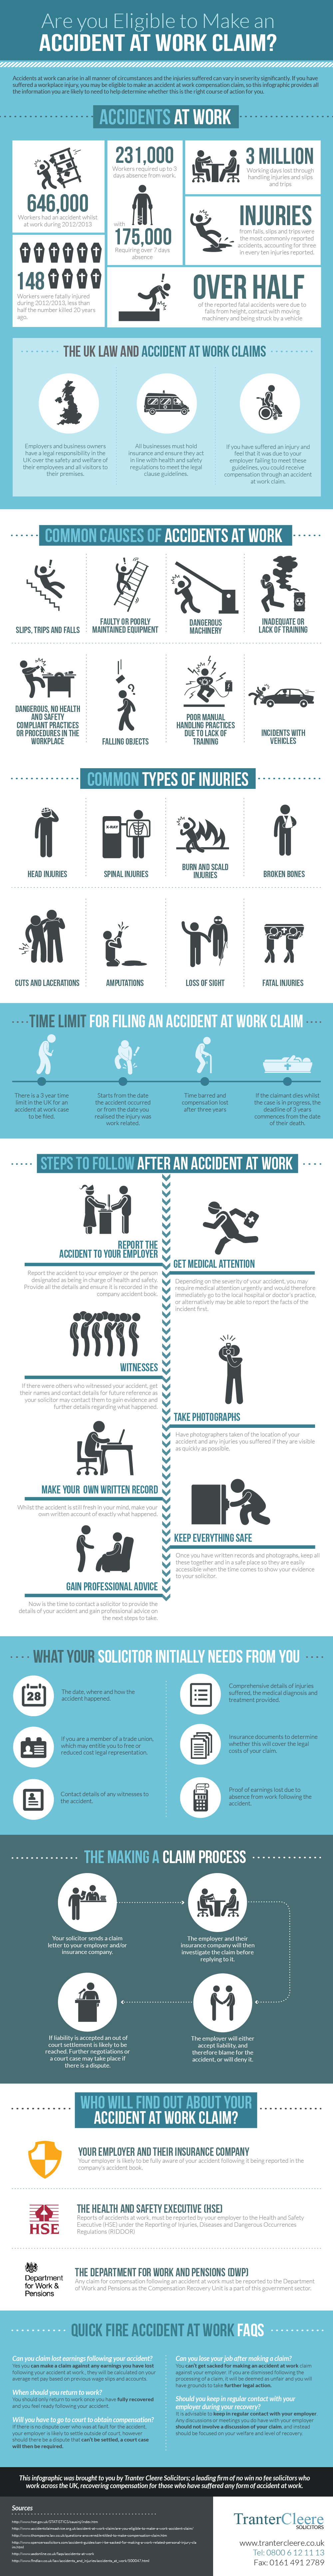 Are You Eligible to Make an Accident at Work Claim- Infographic